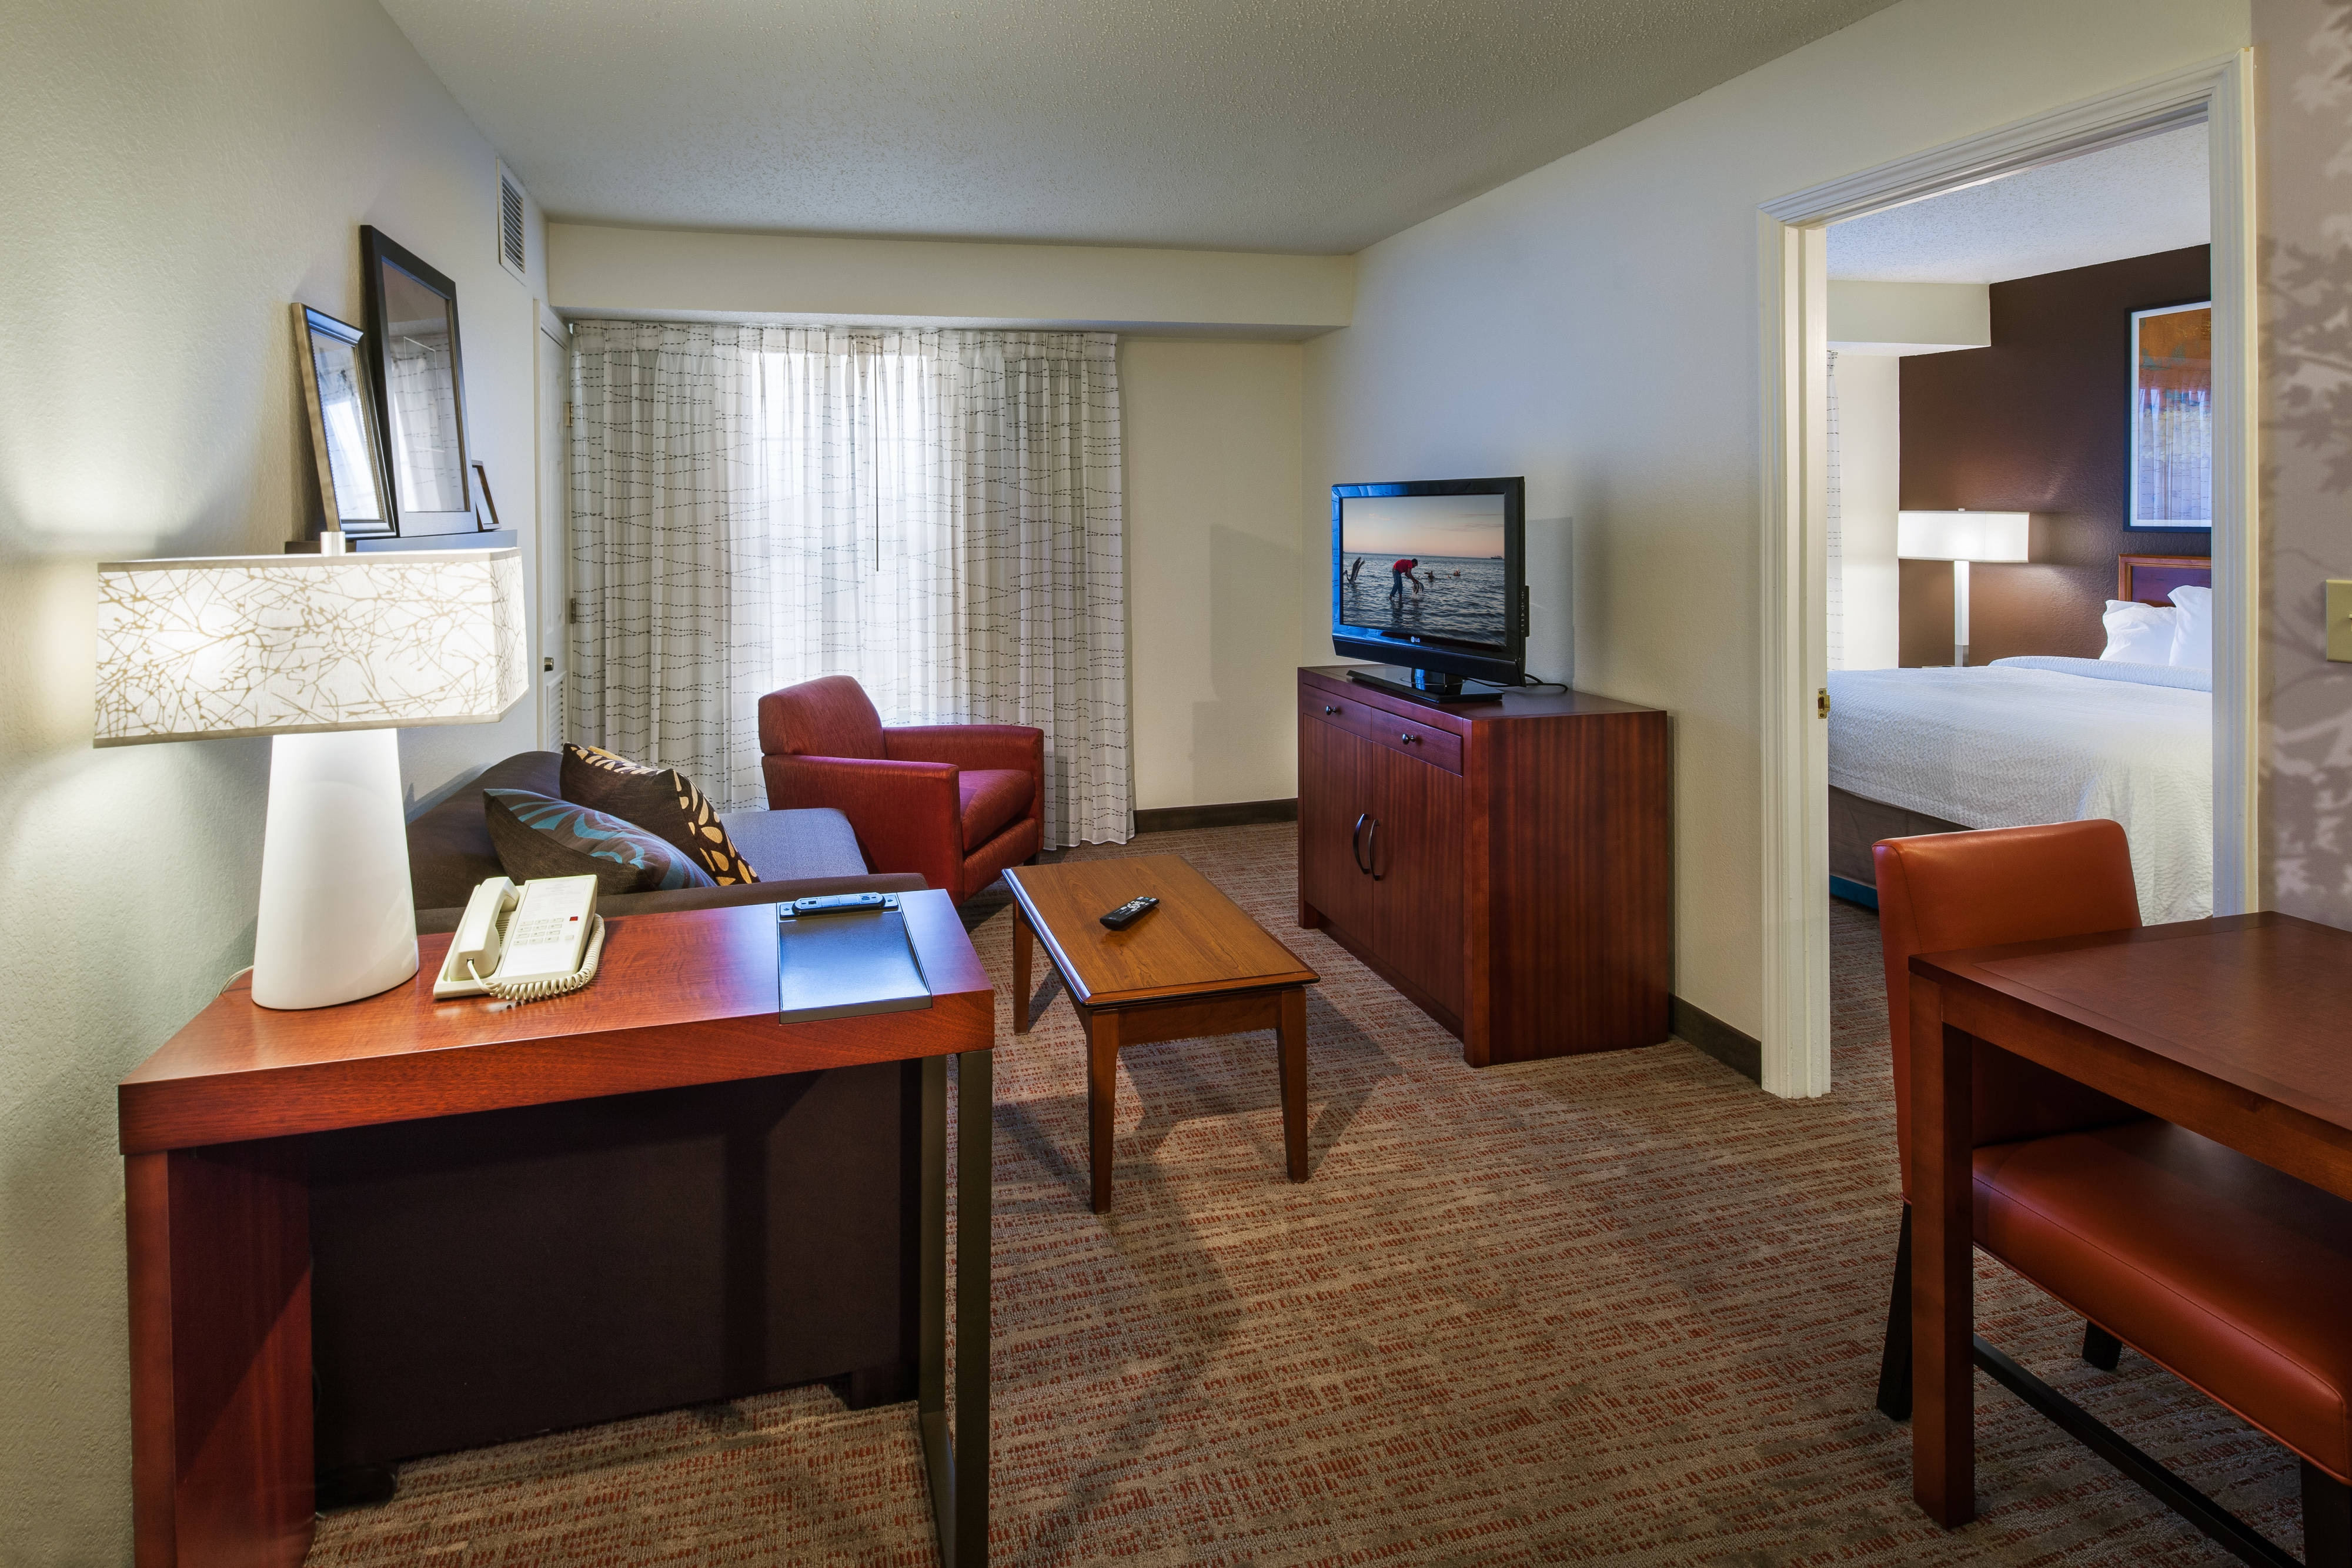 Residence inn columbus easton hotel amenities hotel room highlights for 2 bedroom suites columbus ohio